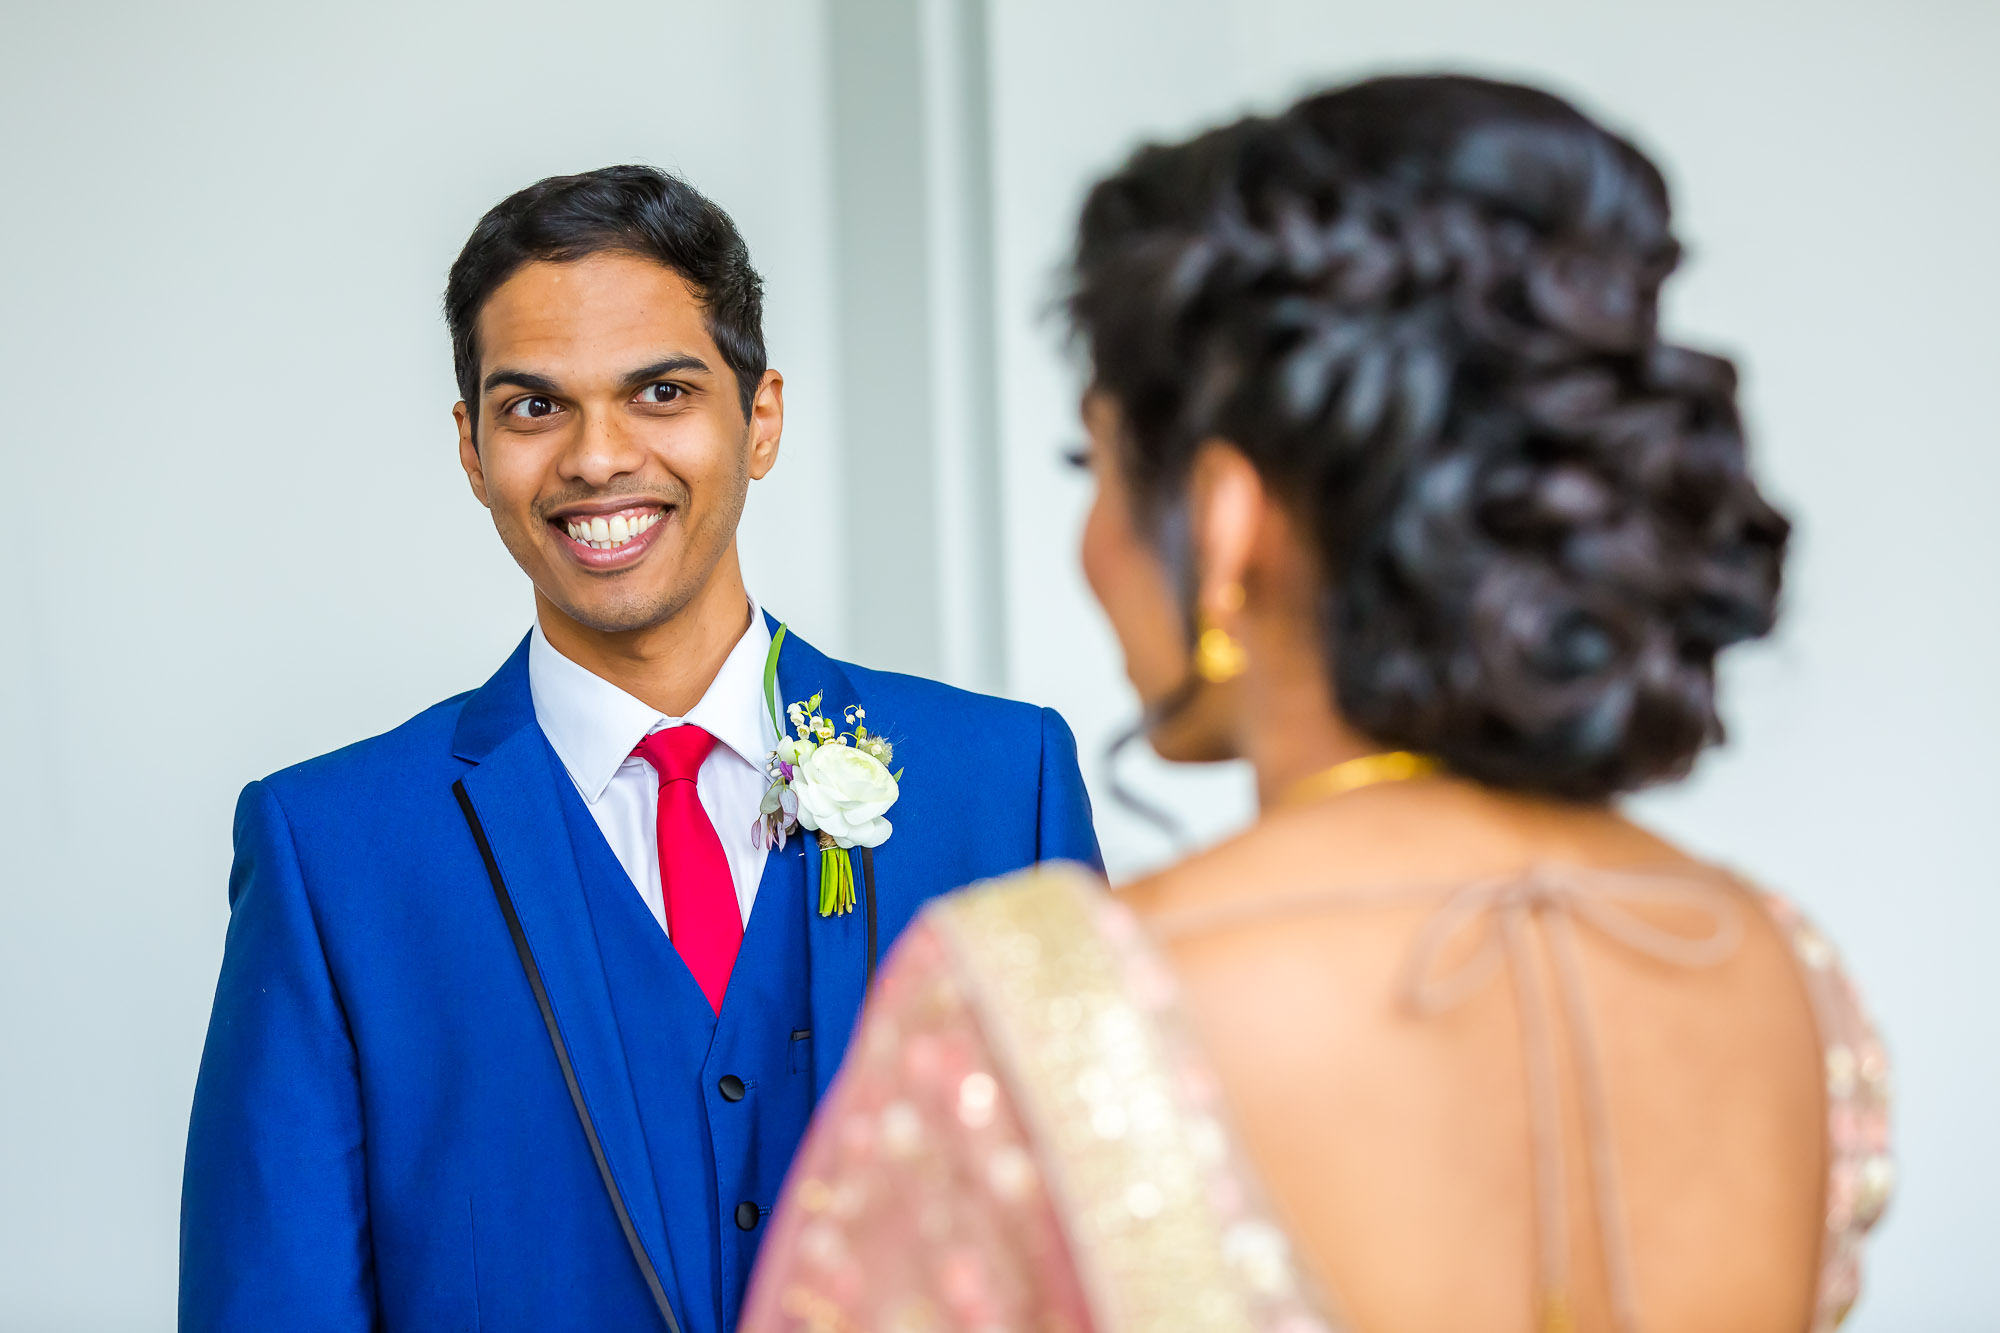 asian-wedding-hindu-tamil-photographer-heythorpe-oxford-0221.jpg